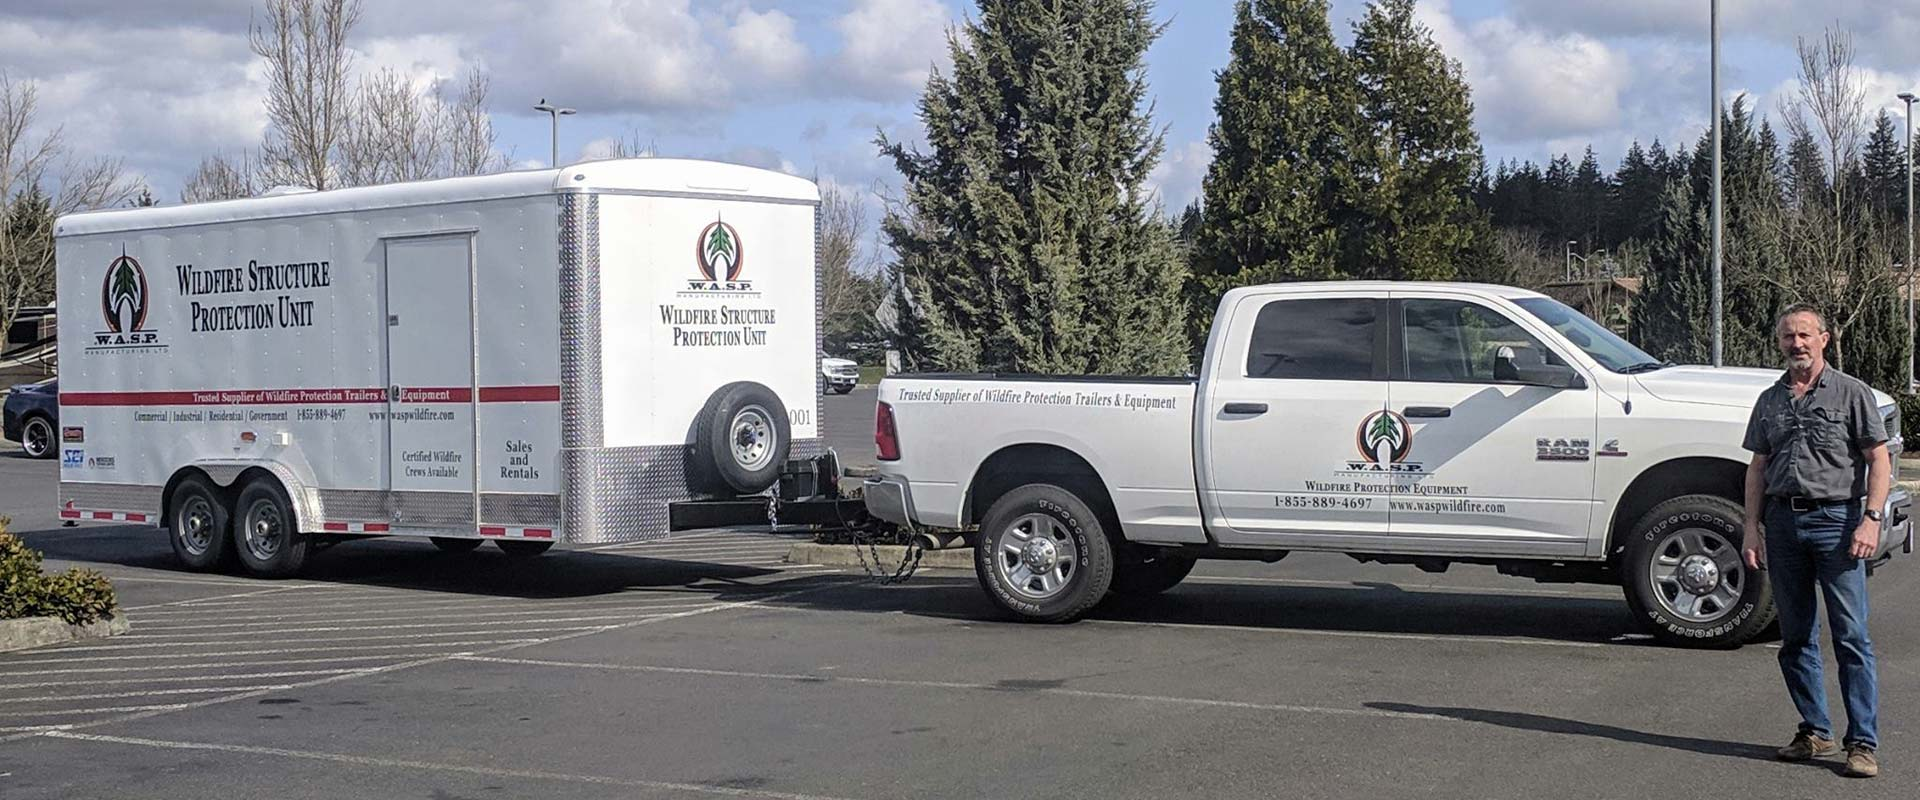 Wildfire Structure Protection Units On The Move